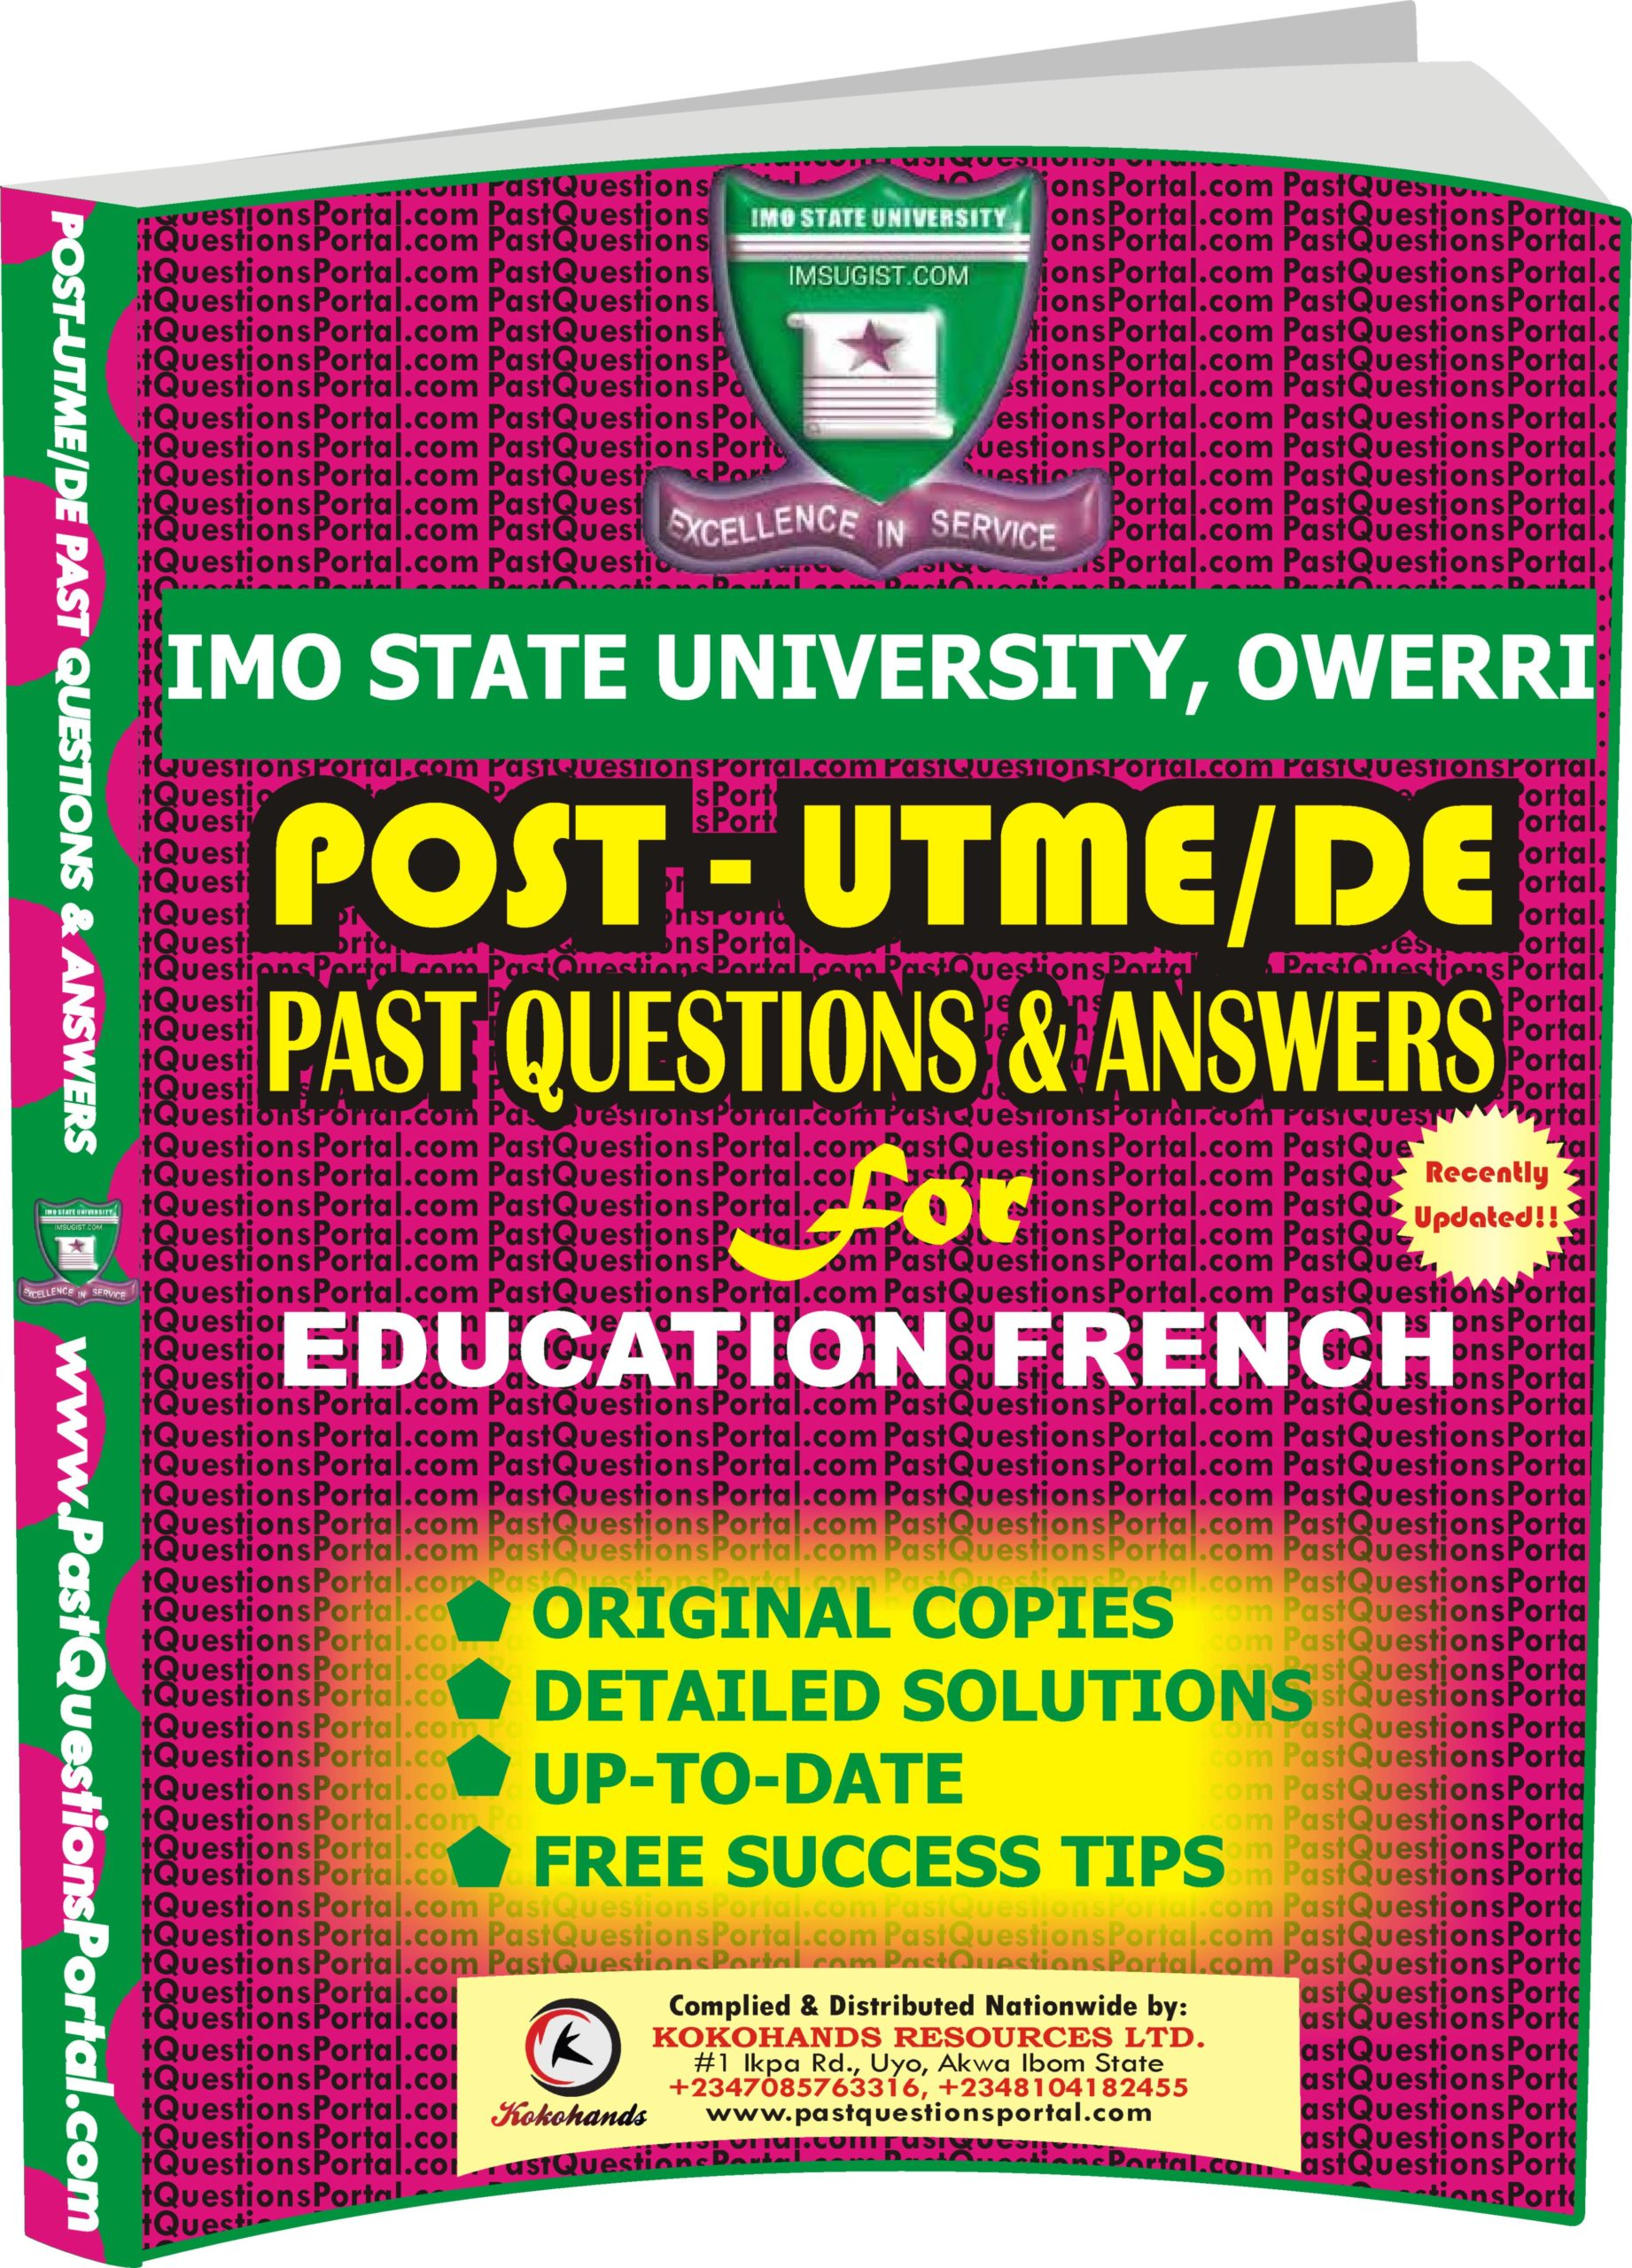 IMSU Post UTME Past Questions for EDUCATION FRENCH